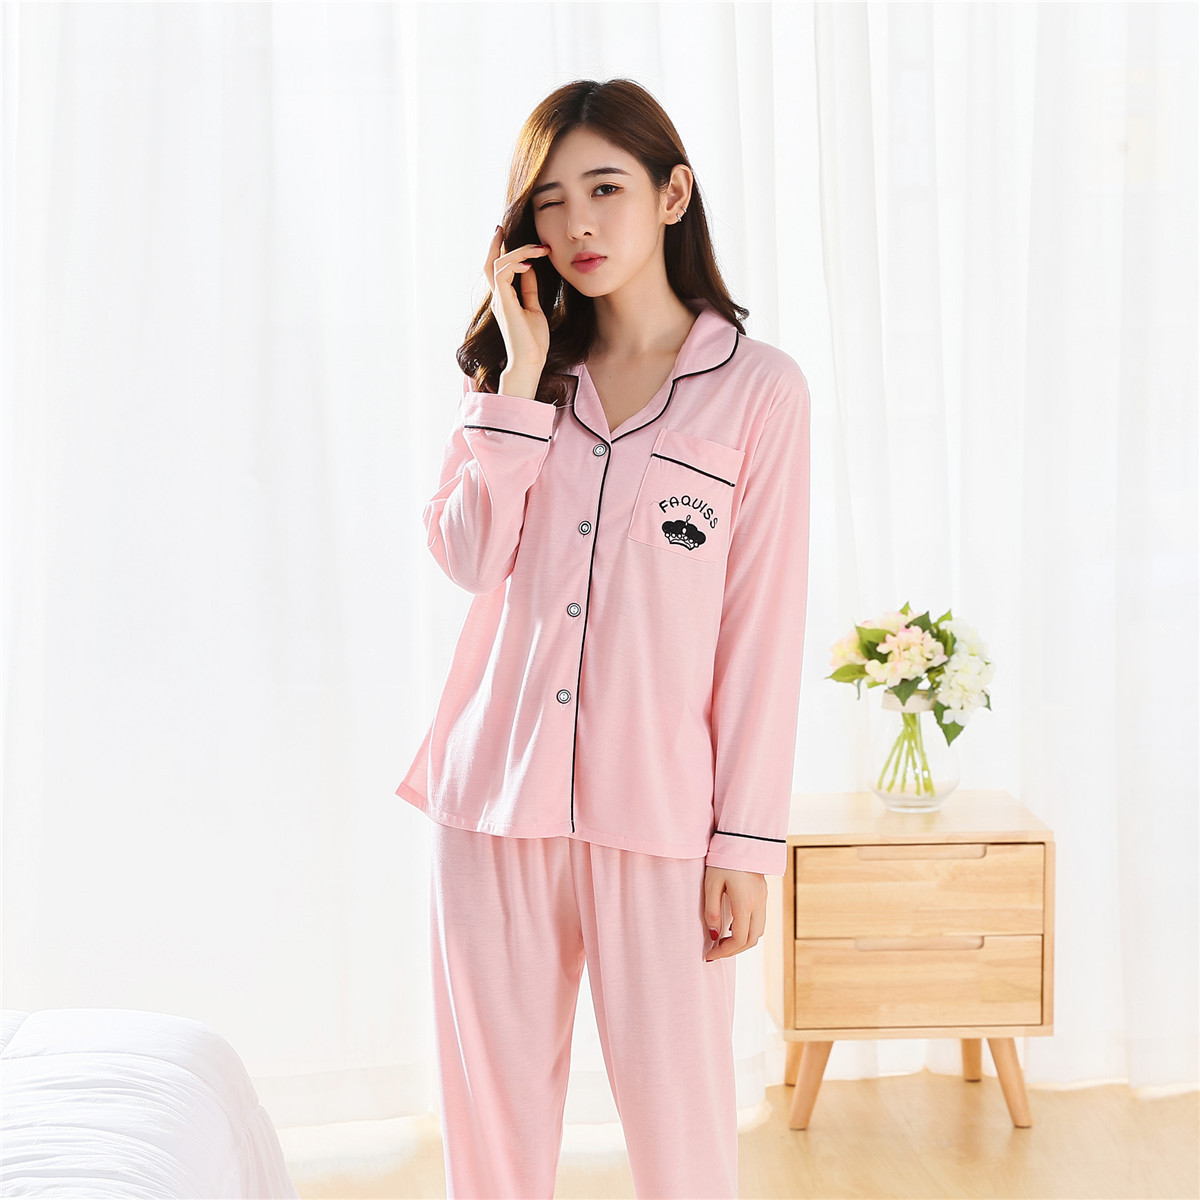 Spring Summer Korean-style Cardigan Button Down Shirt WOMEN'S Pajama Long Sleeve Trousers Knitted Cotton South Korea Pajamas Who